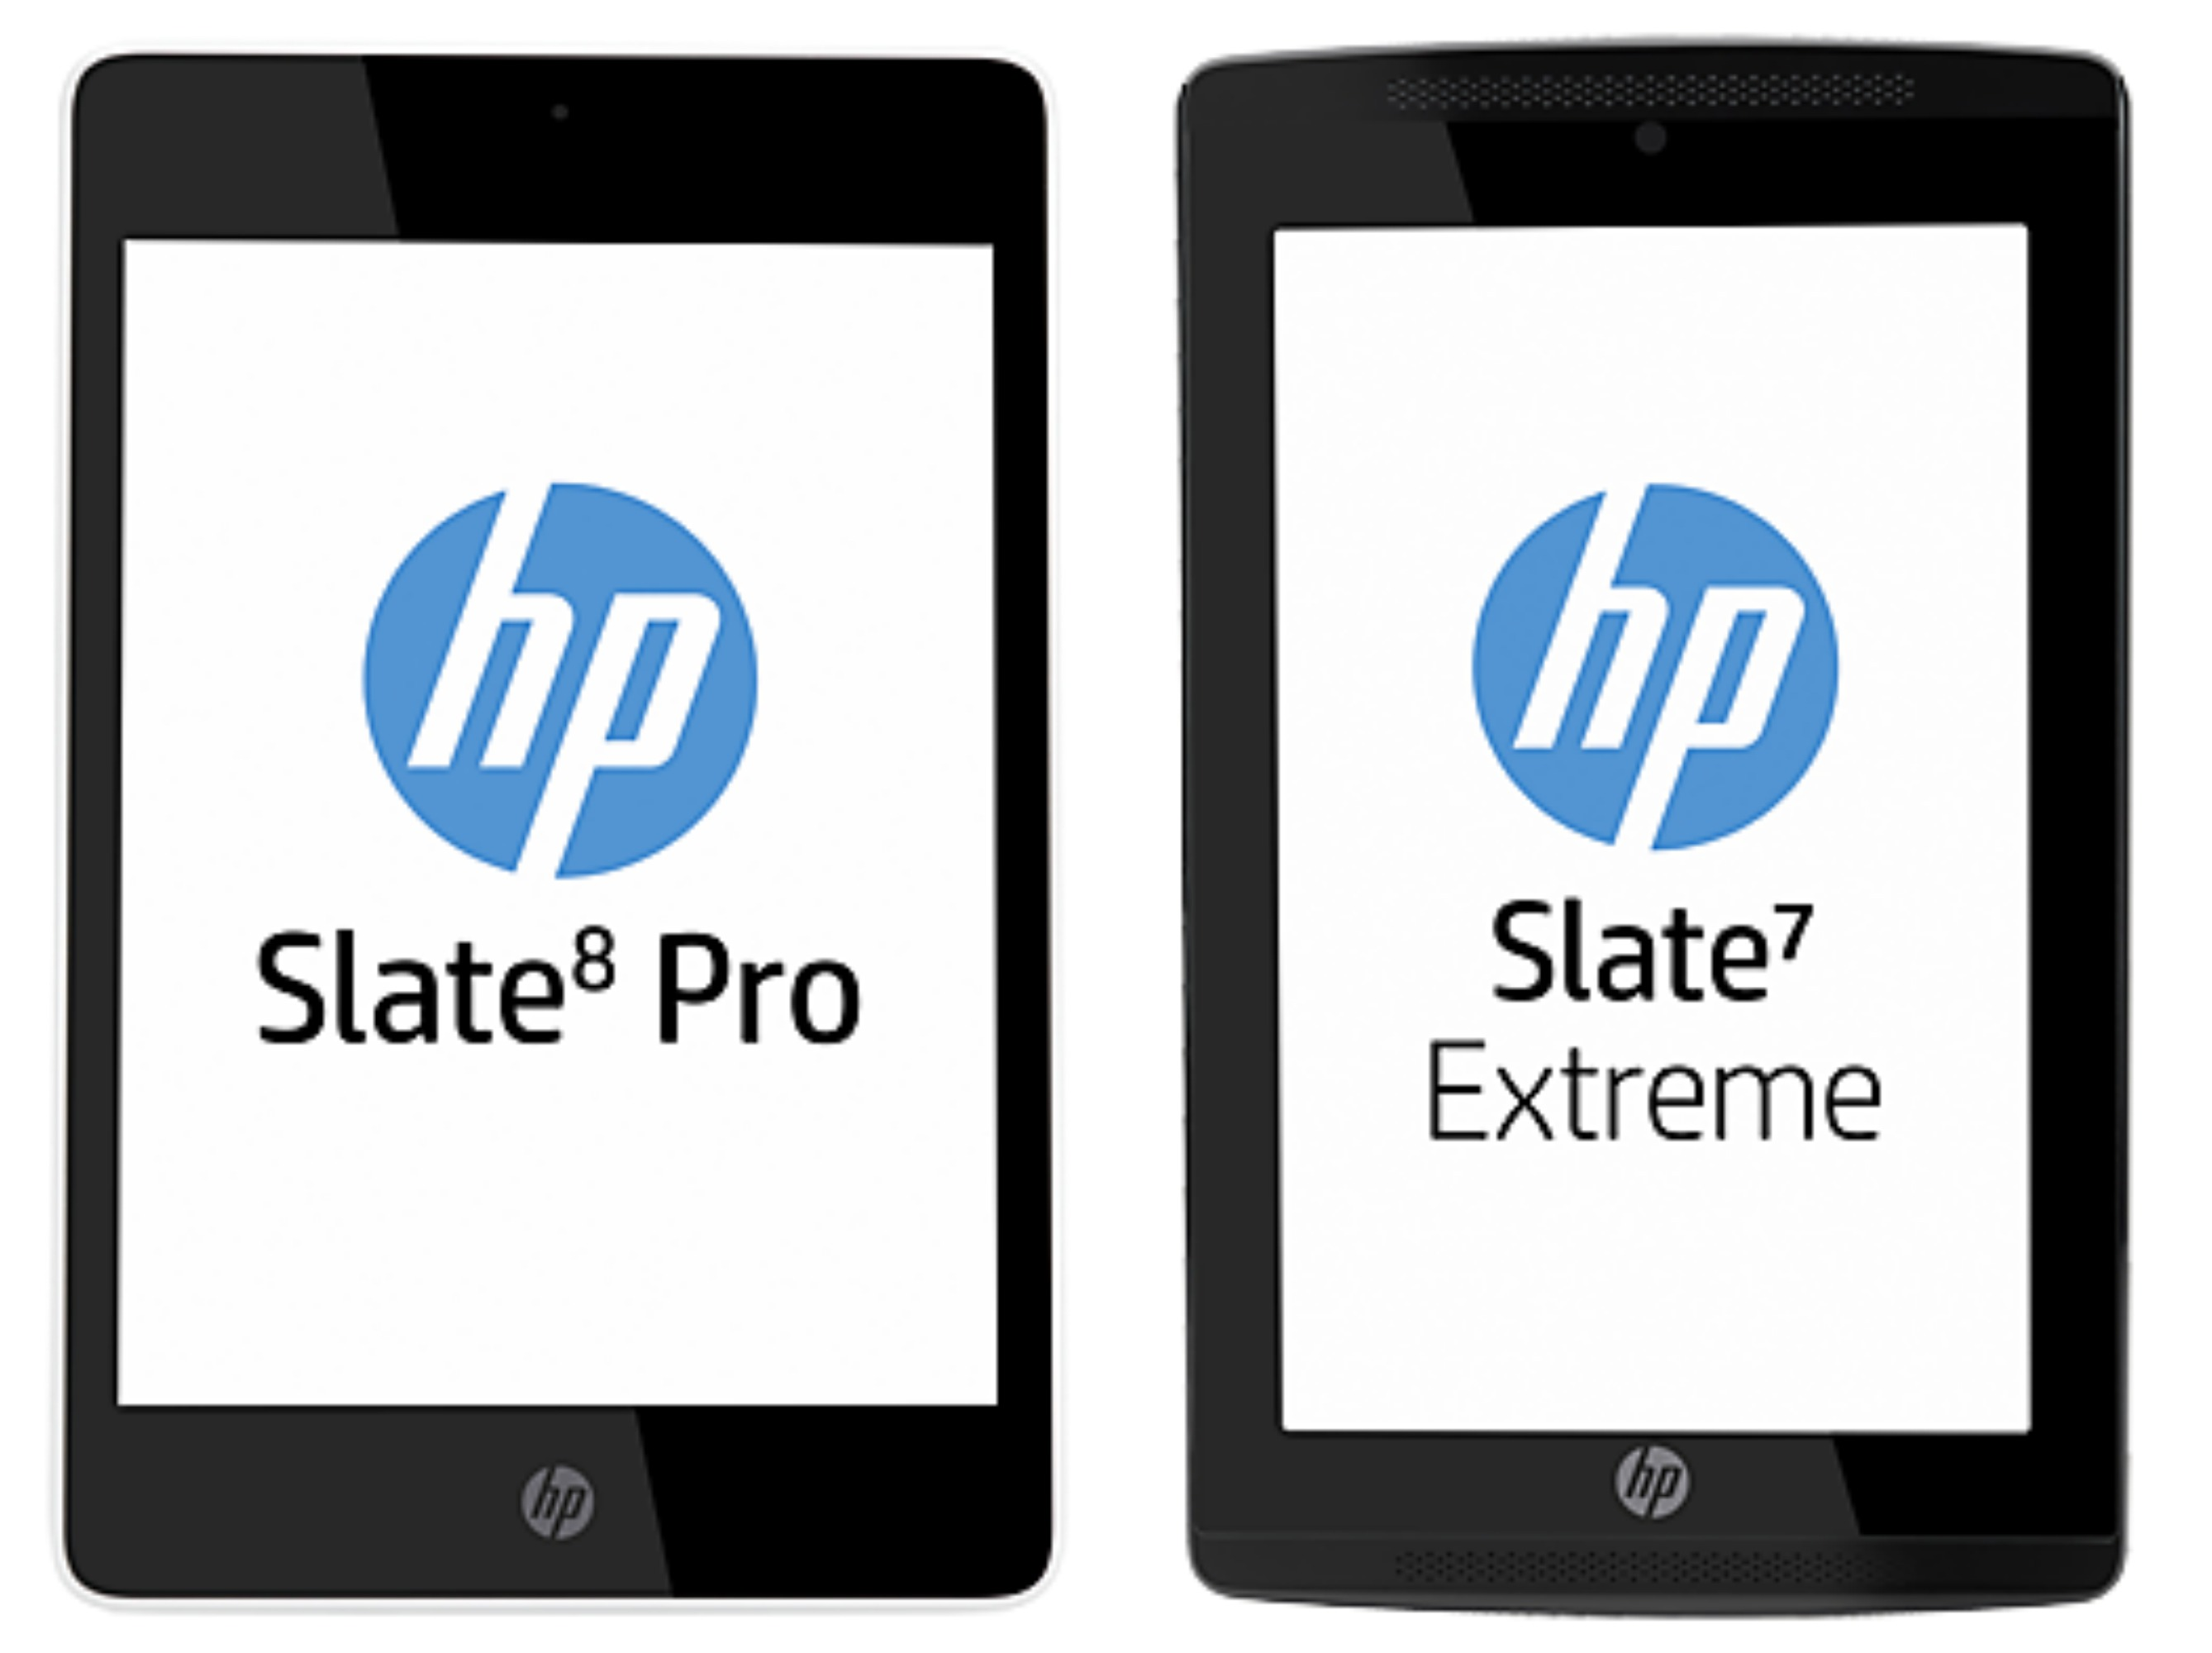 Tegra 4 Powered Hp Slate 8 Pro And Hp Slate 7 Extreme Now Available From Best Buy Phandroid